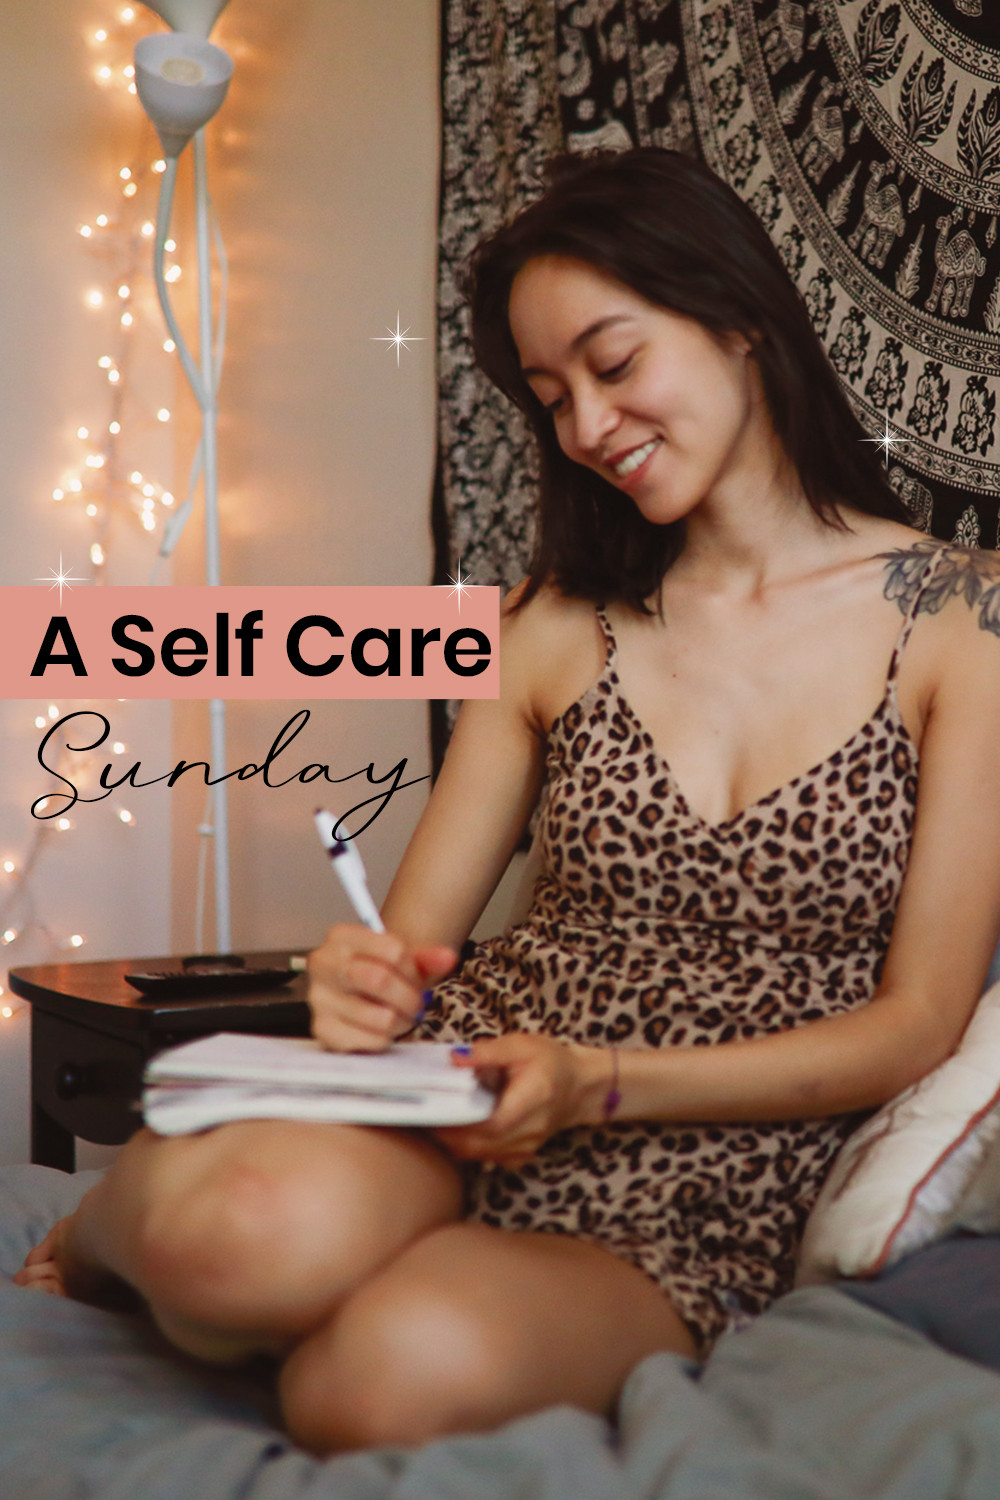 what should I do for self care Sunday